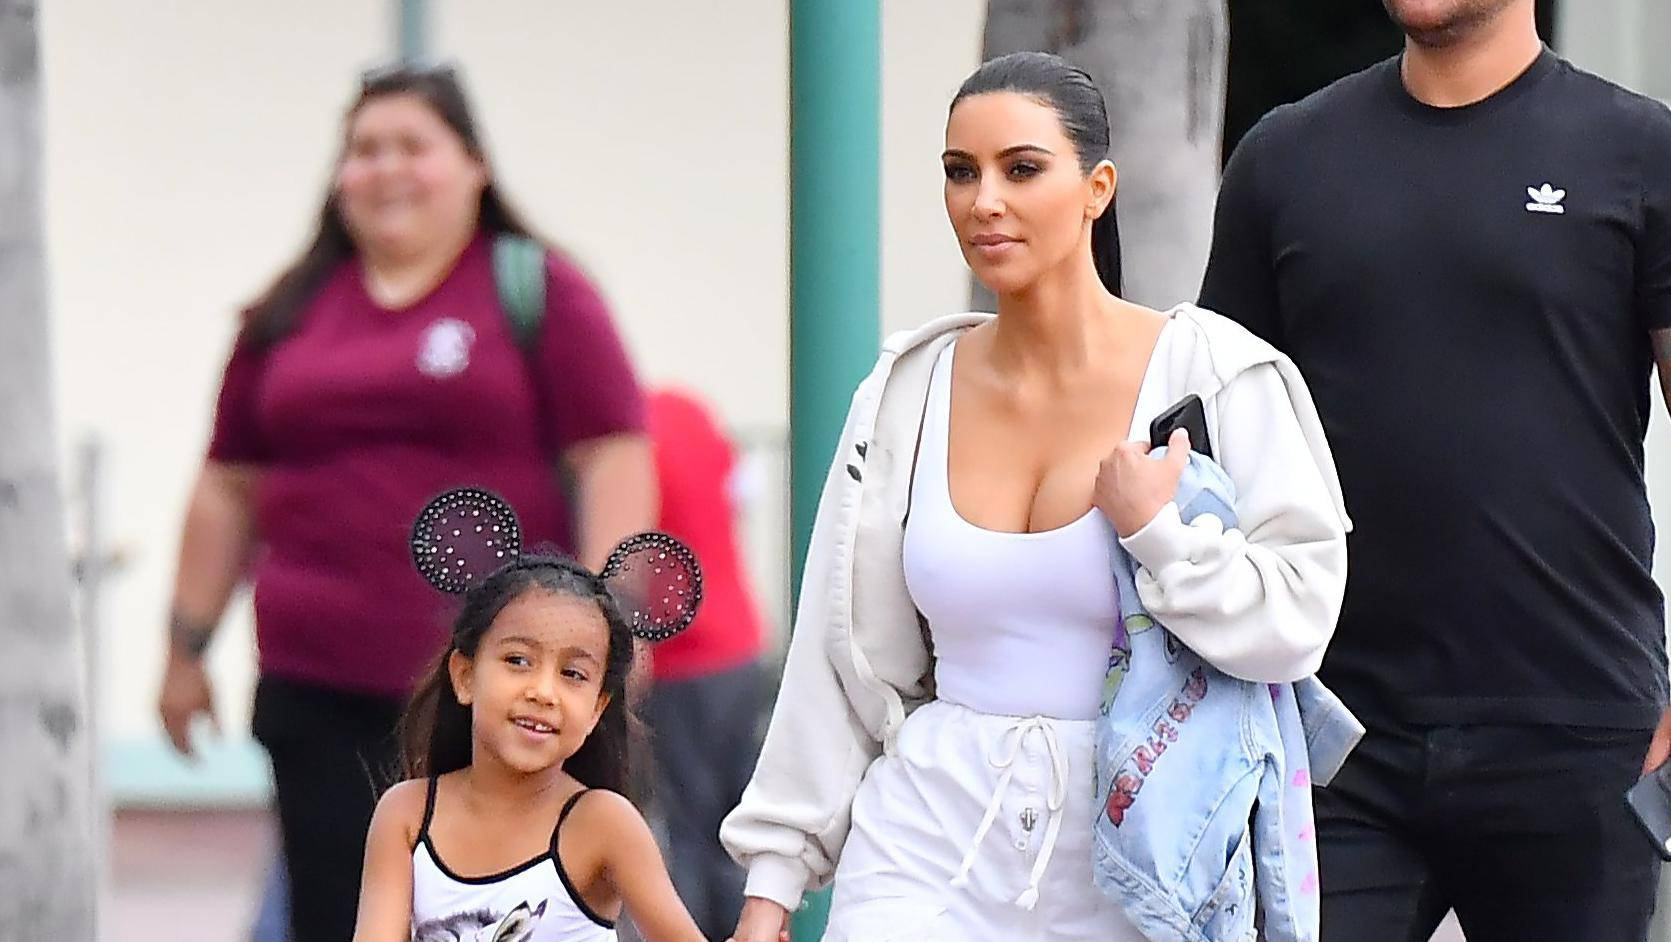 ** PREMIUM EXCLUSIVE RATES APPLY ** Kim Kardashian and her daughter North West have a fun day at Disneyland with friends